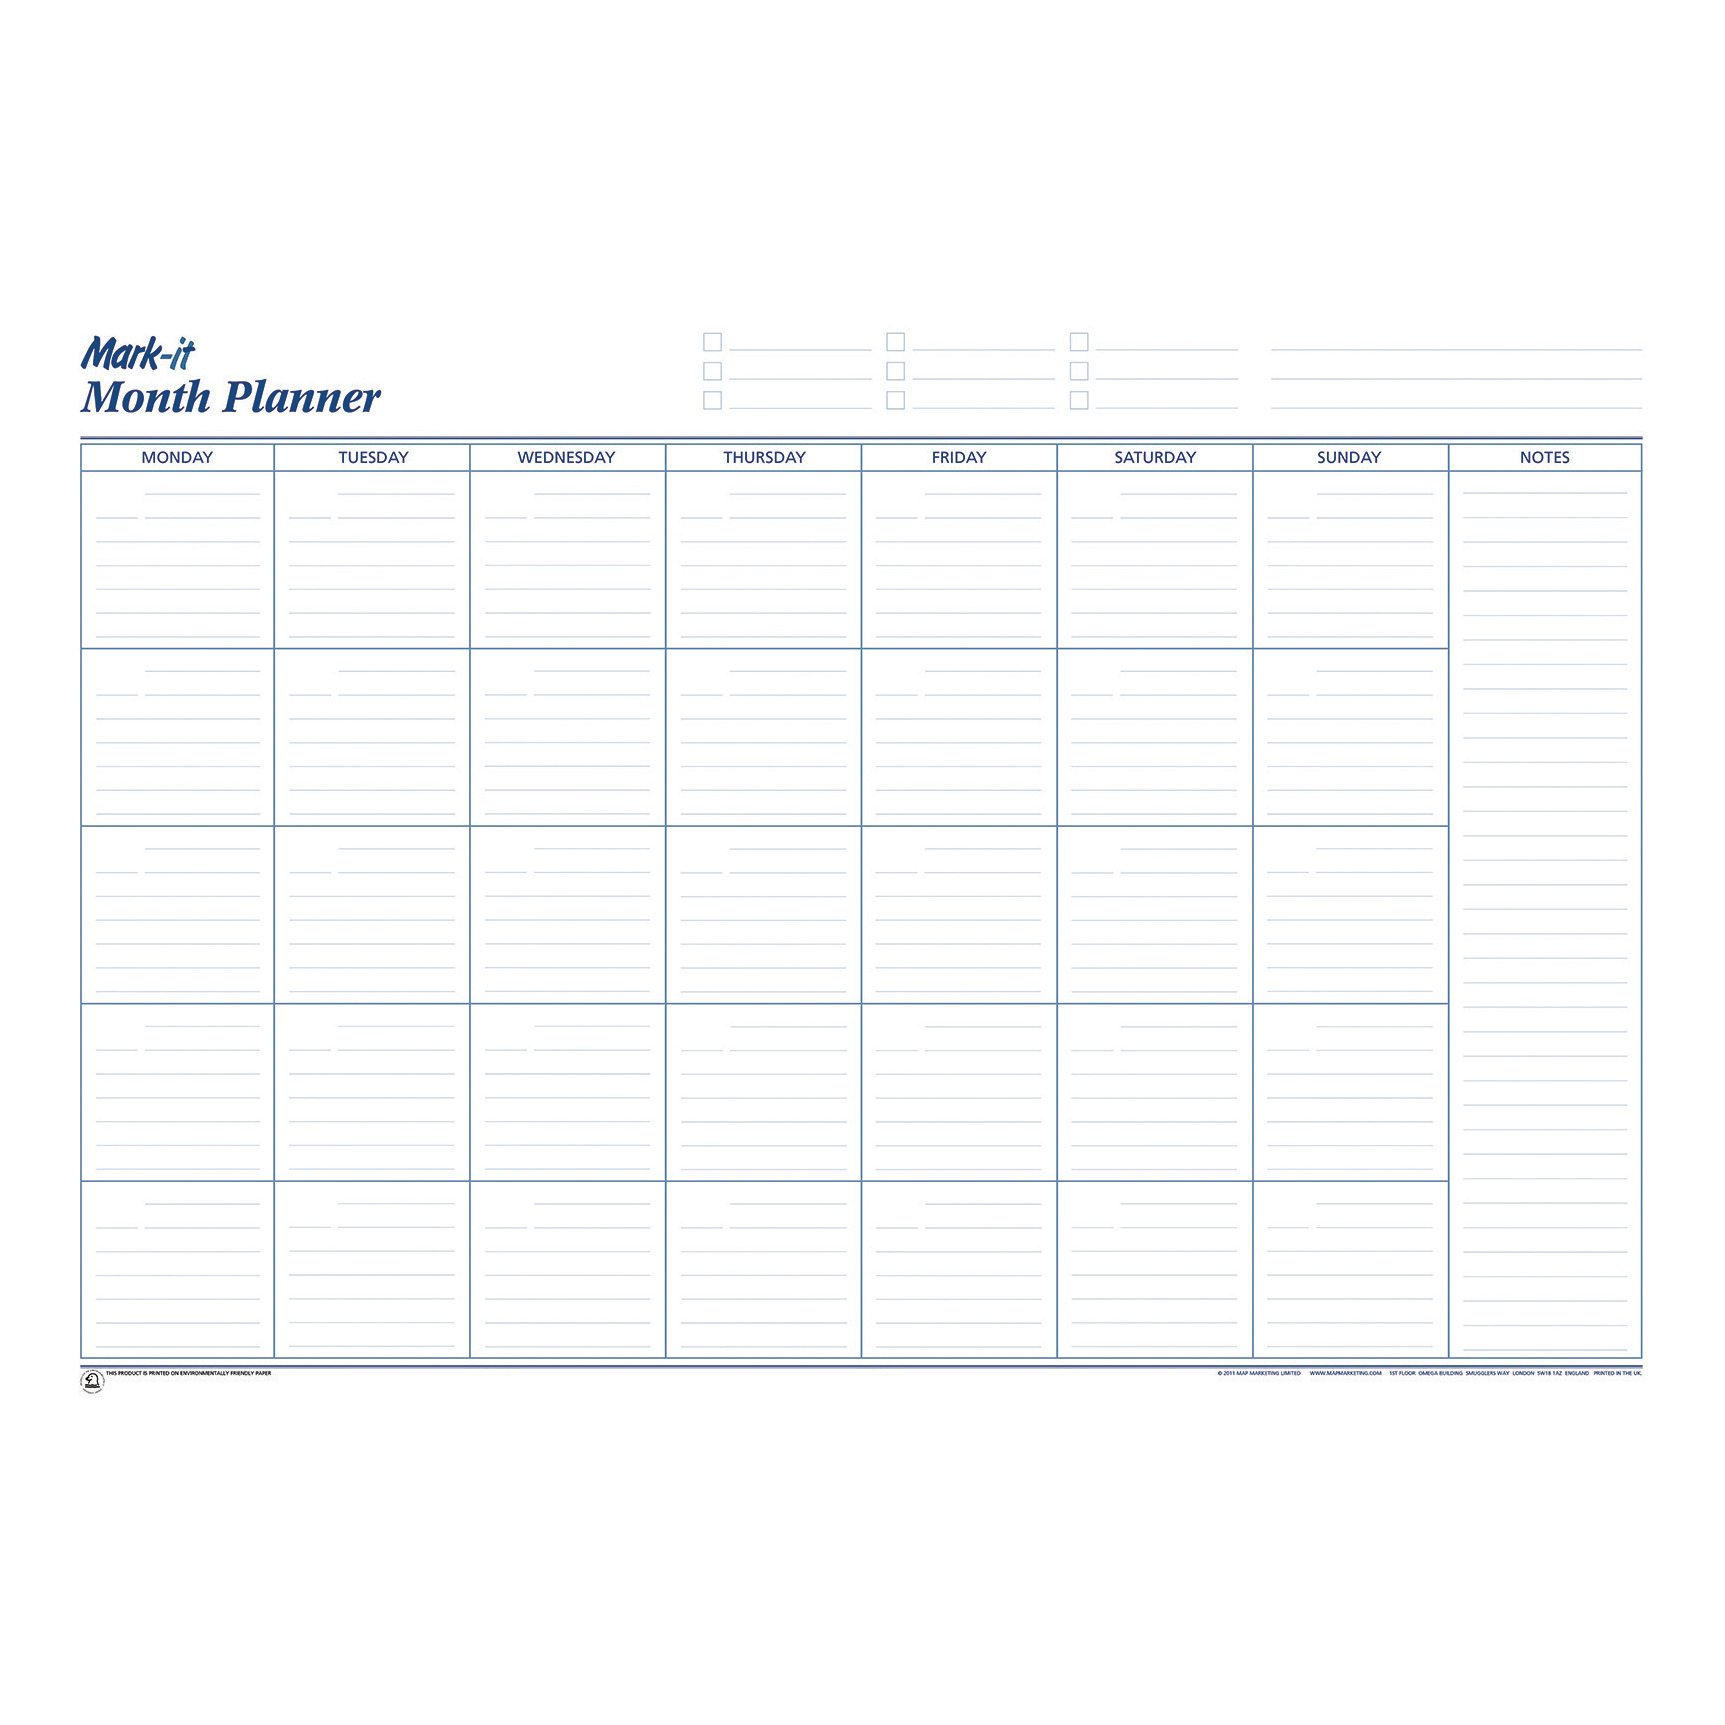 Planners Mark-it Perpetual Month Planner Laminated with Notes Column W900xH600mm Ref MP